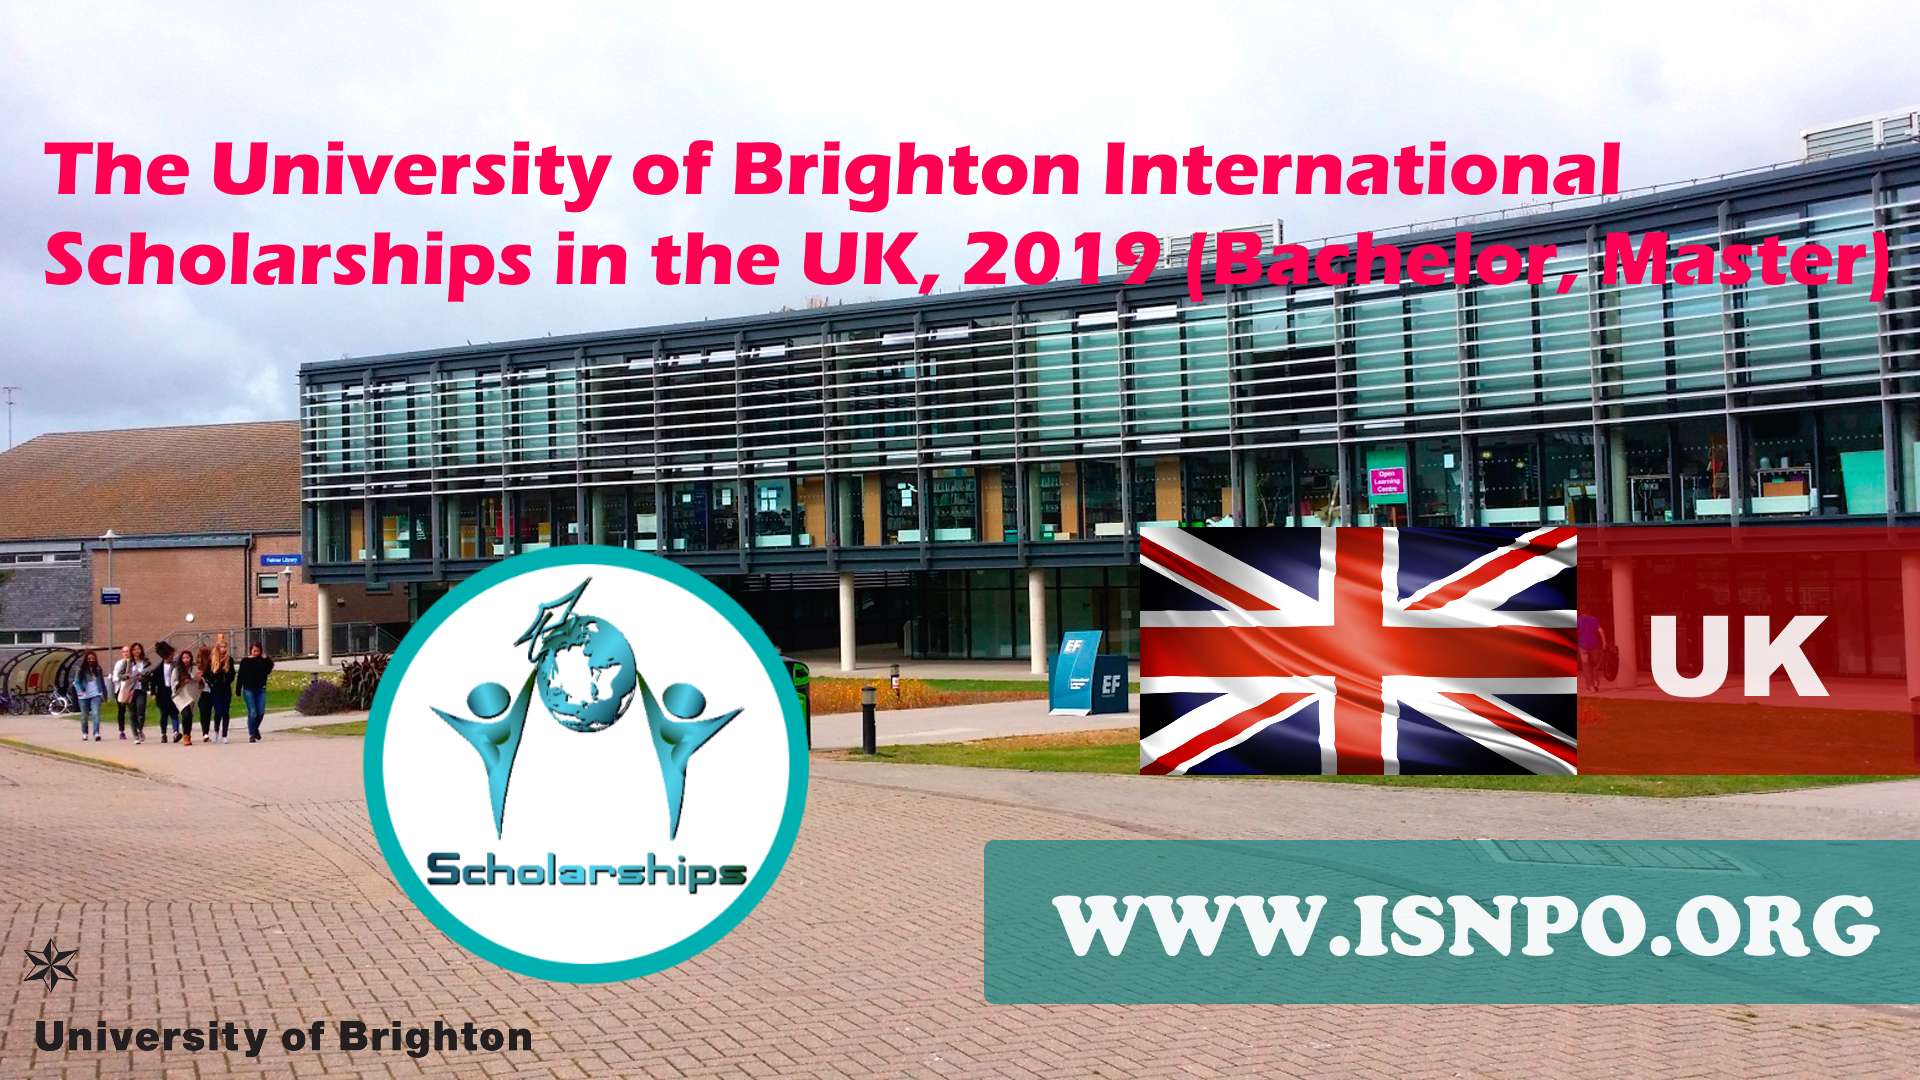 The University of Brighton International Scholarships in the UK, 2019 (Bachelor, Master)